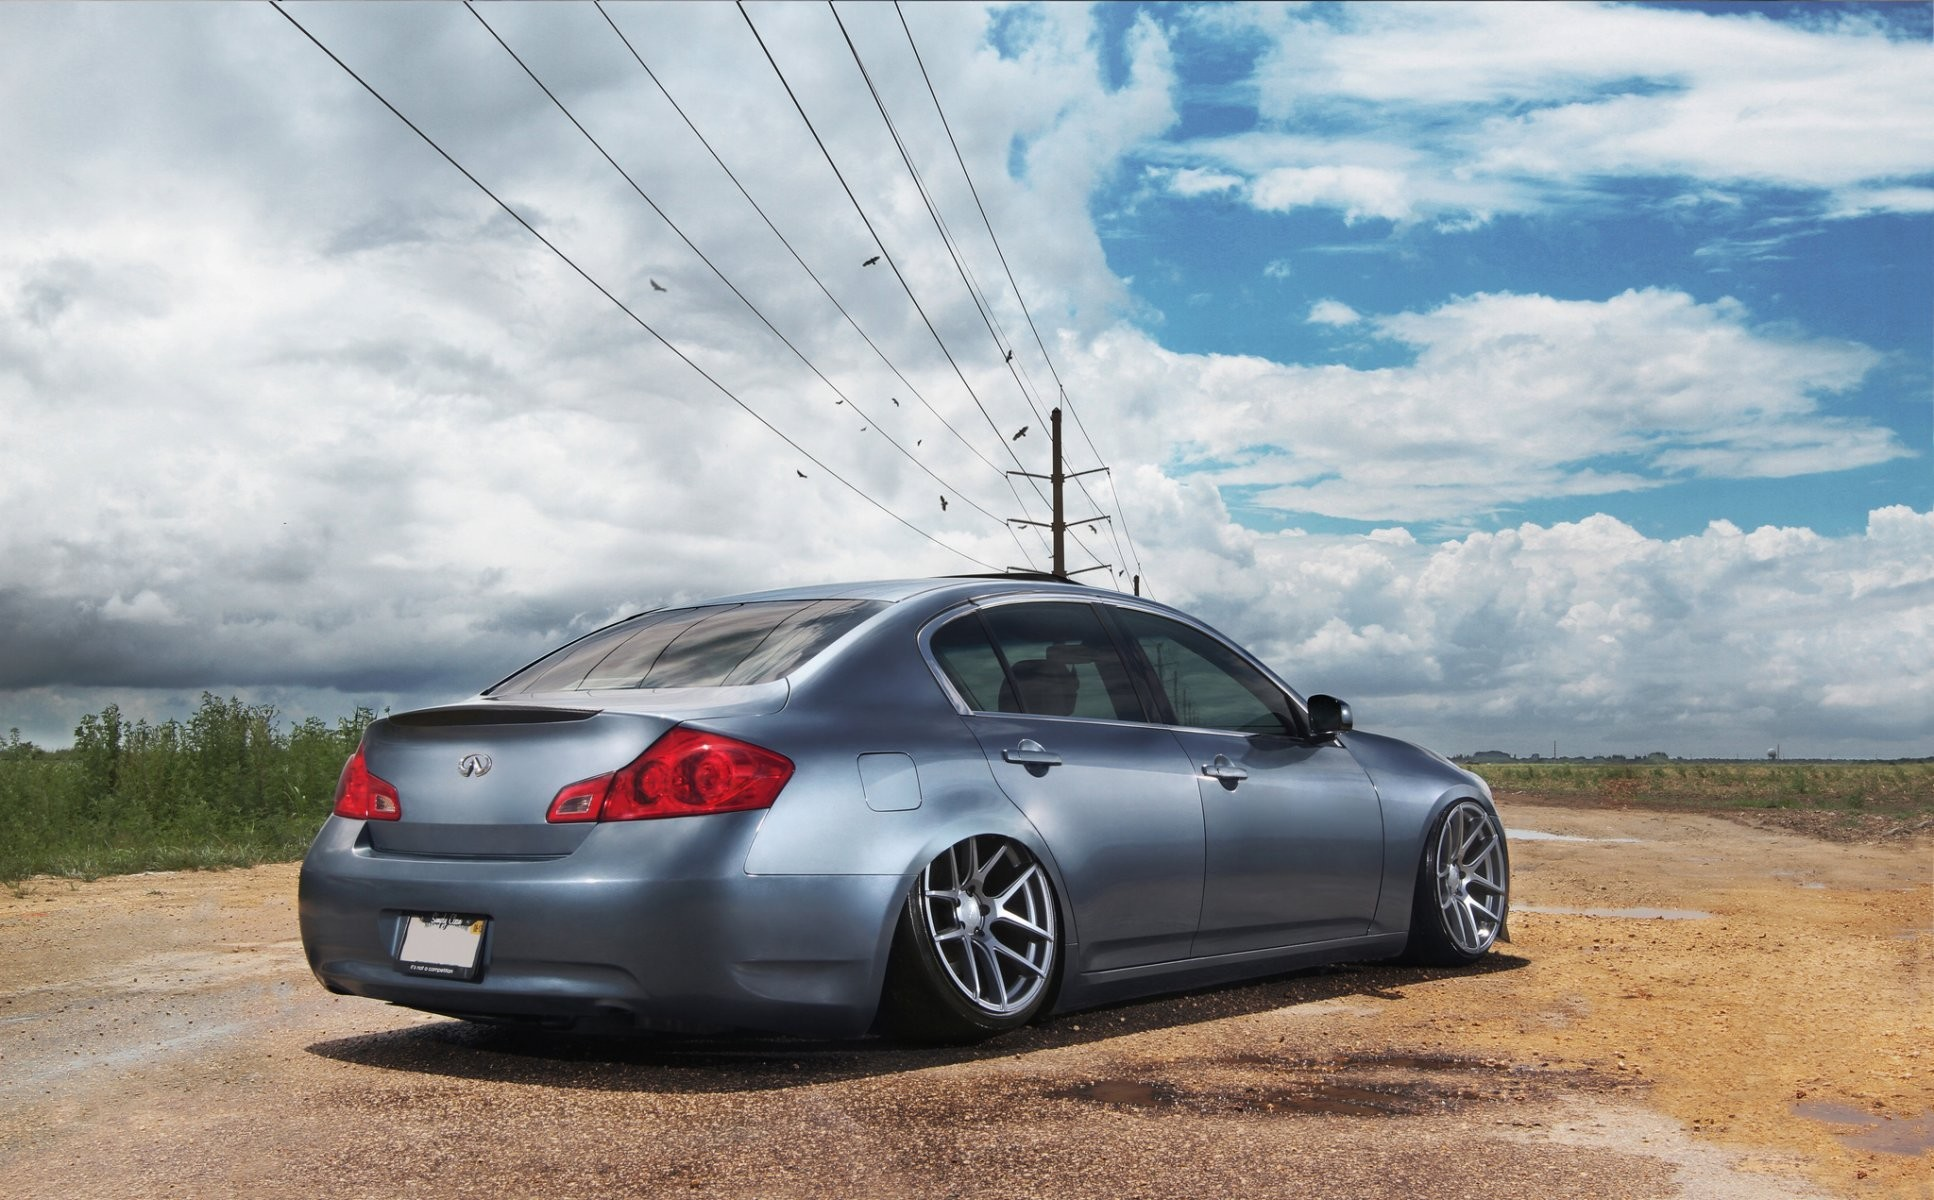 1941x1092 2002 Infiniti G35 Coupe V6 Hd Car Wallpaper